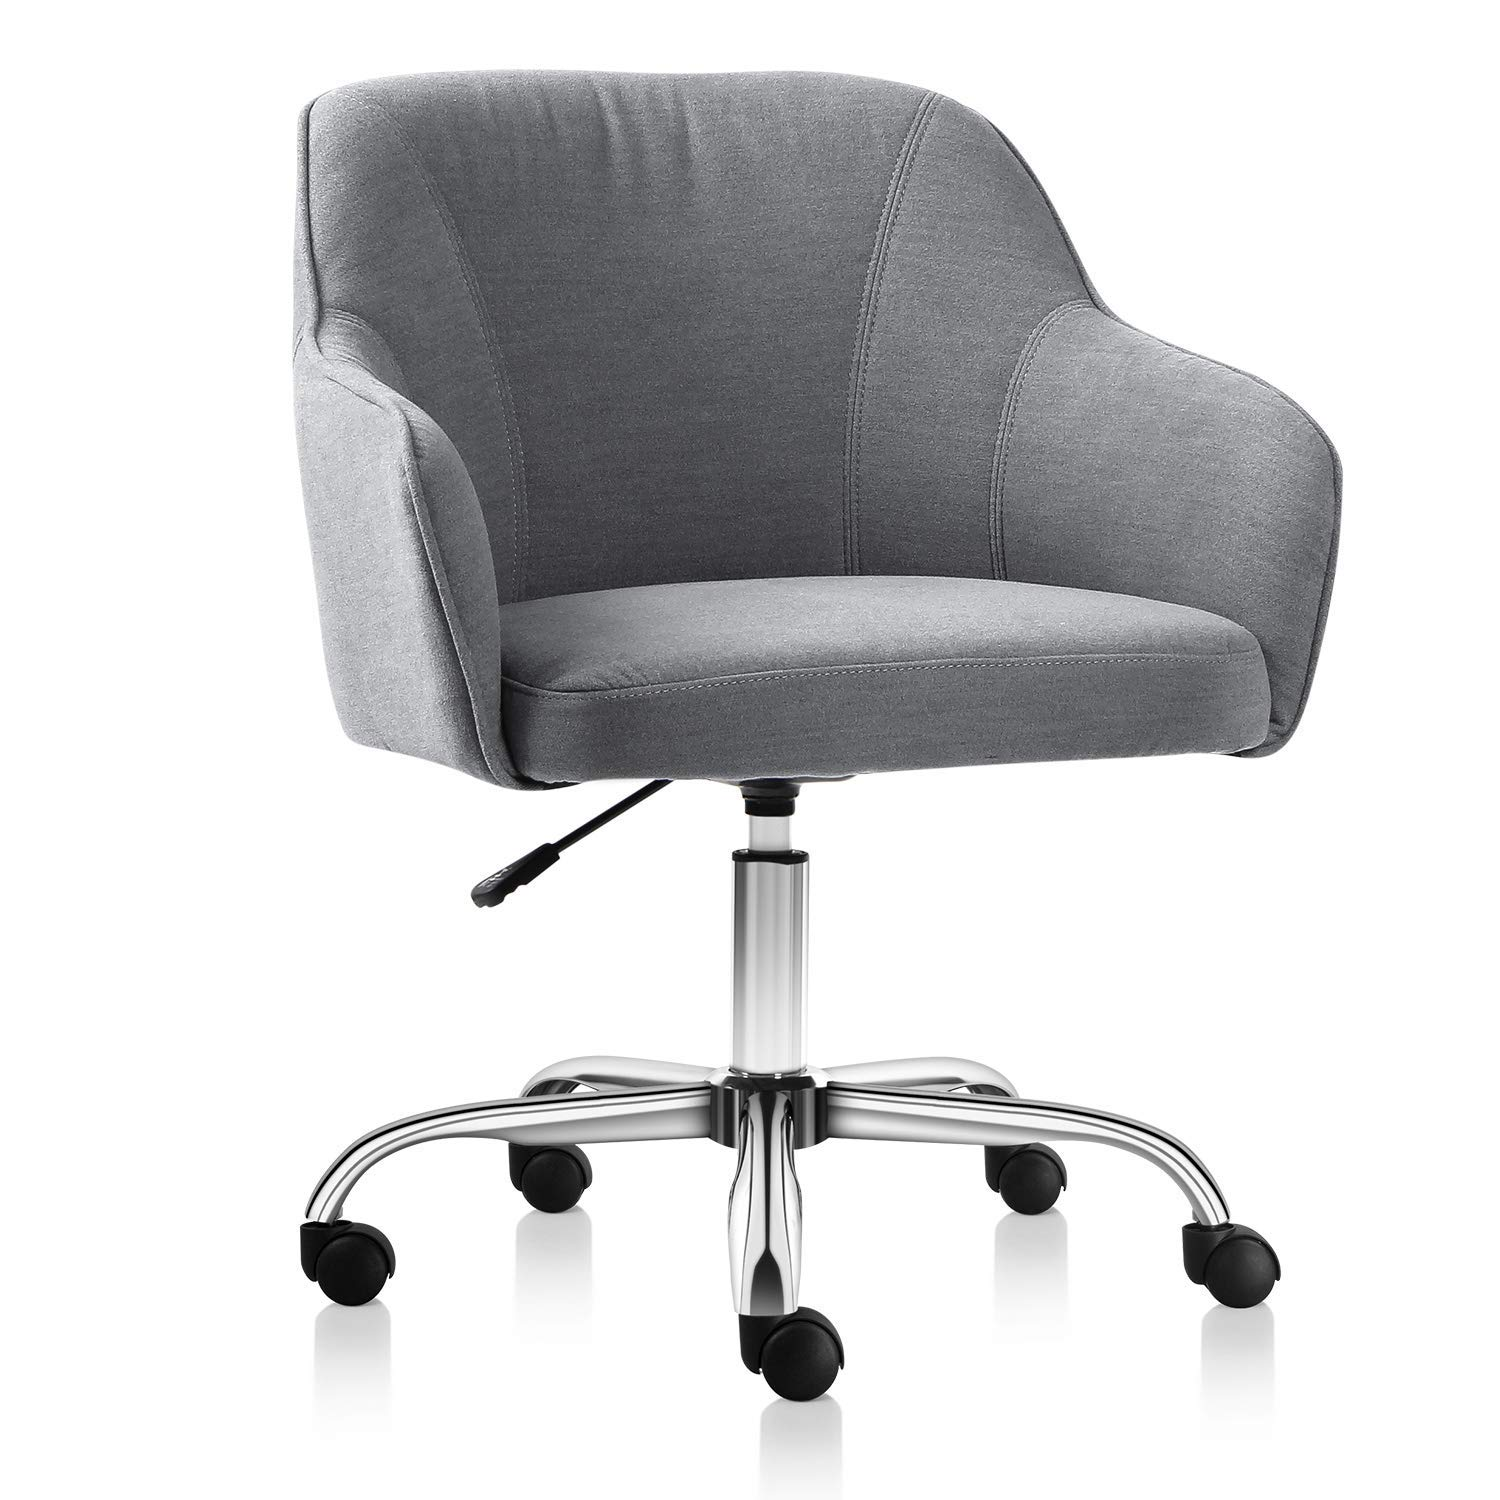 Rimiking Home Office Chair Upholstered Desk Chair With Arms For Conference Room Or Office Grey Ezgoods Llc